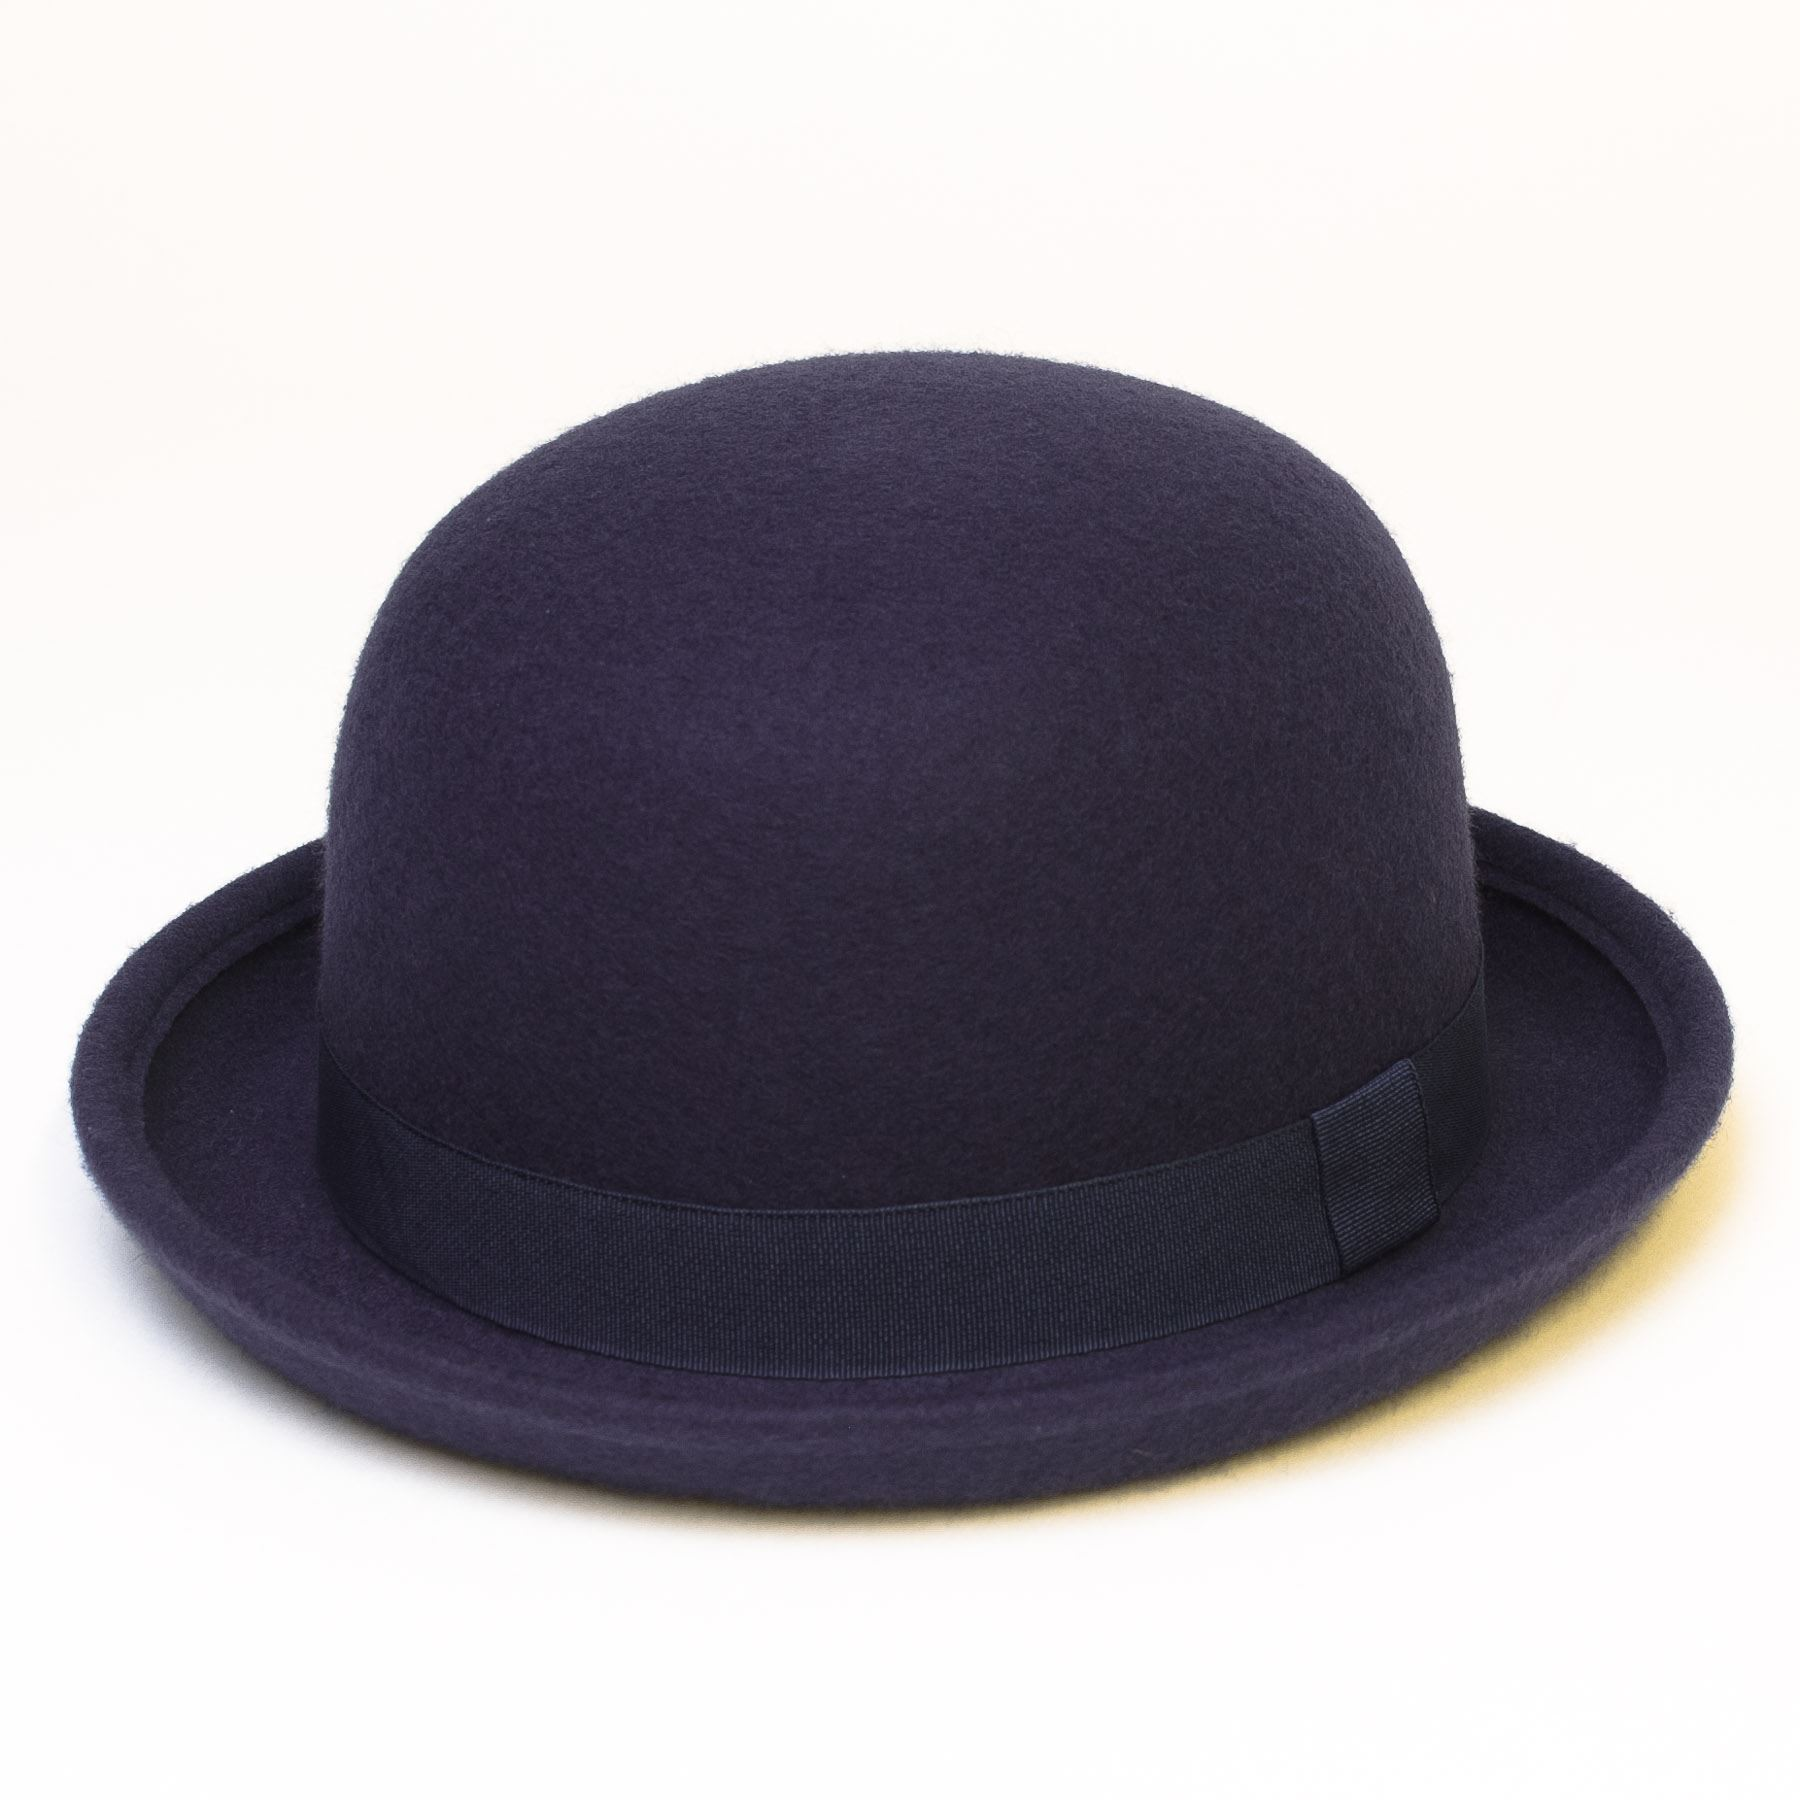 Is The Bowler Hat Making A Comeback? The Read The Journal 35